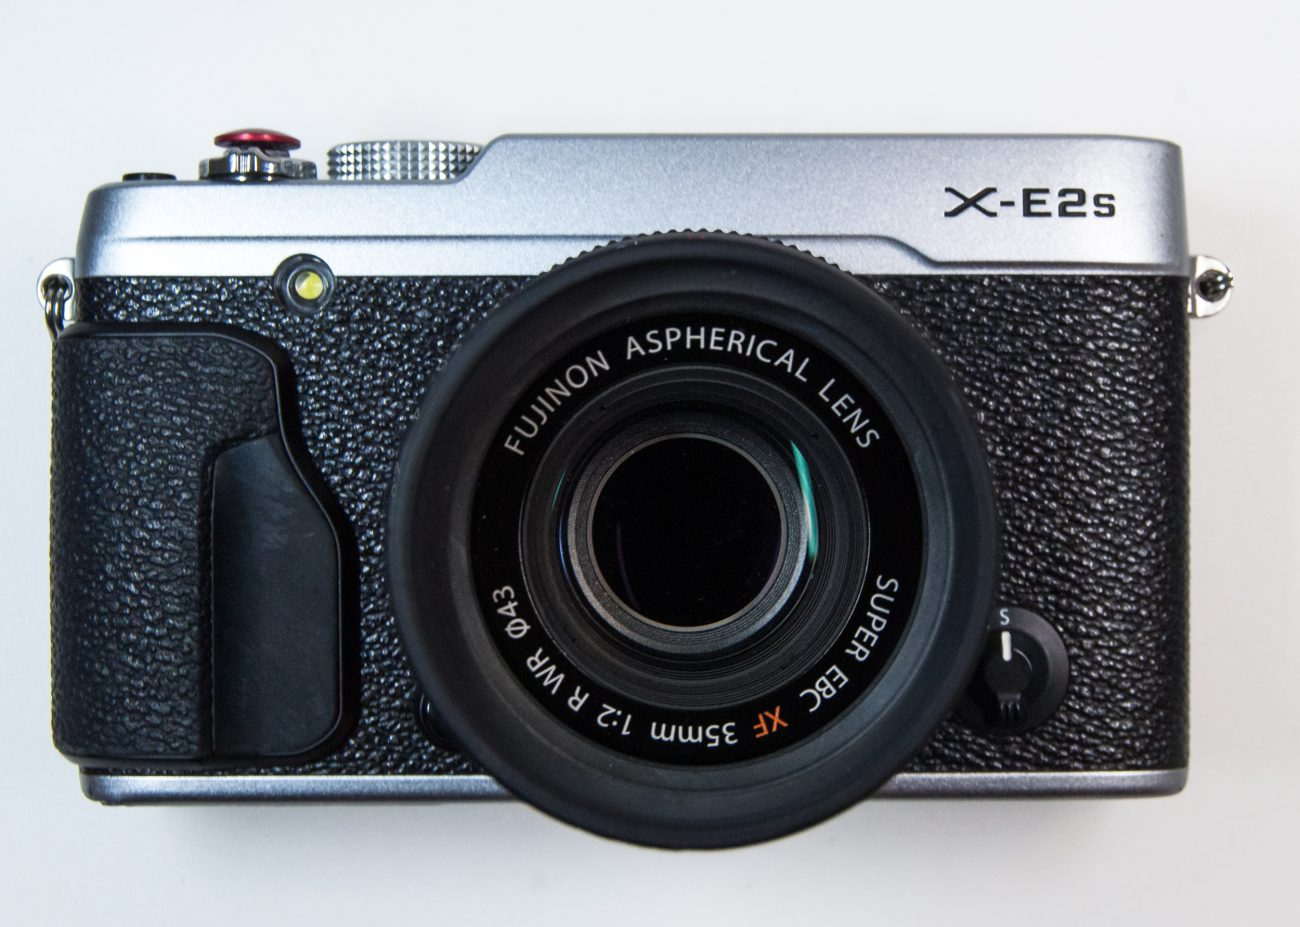 Photograph of a Fujifilm X-E2s camera with 35mm F2:0 WR lens